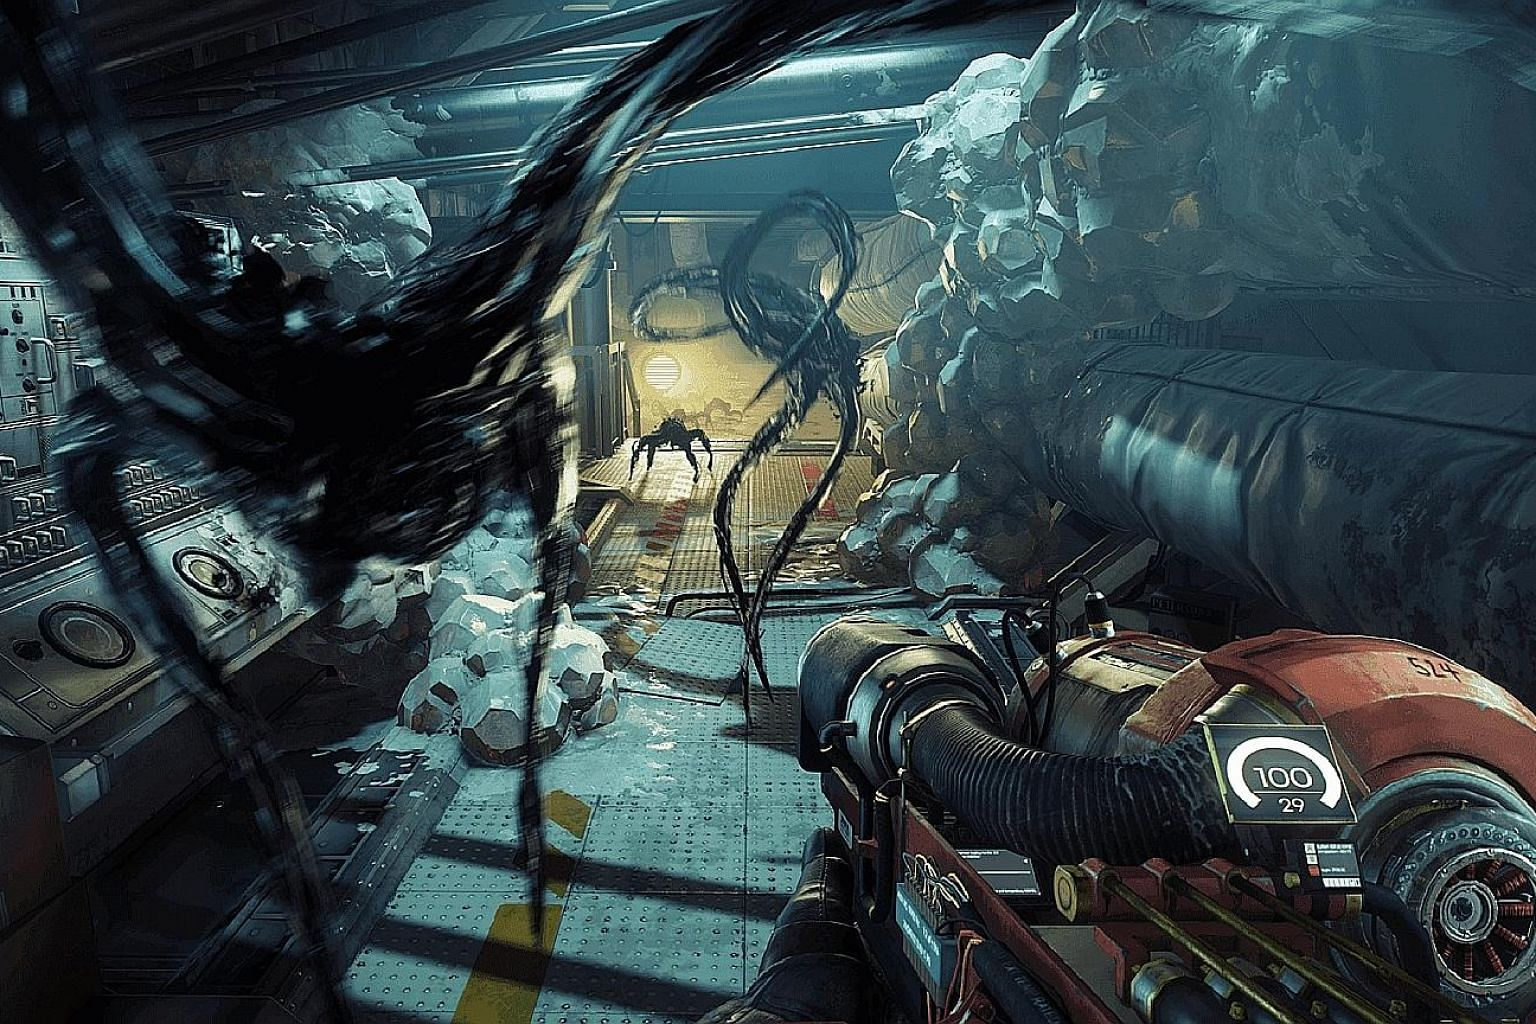 The haunting music and sound effects in Prey (2017), along with the superb graphics, add to the realism in the game. You will also get a shock each time a random item changes itself back into a Typhon.